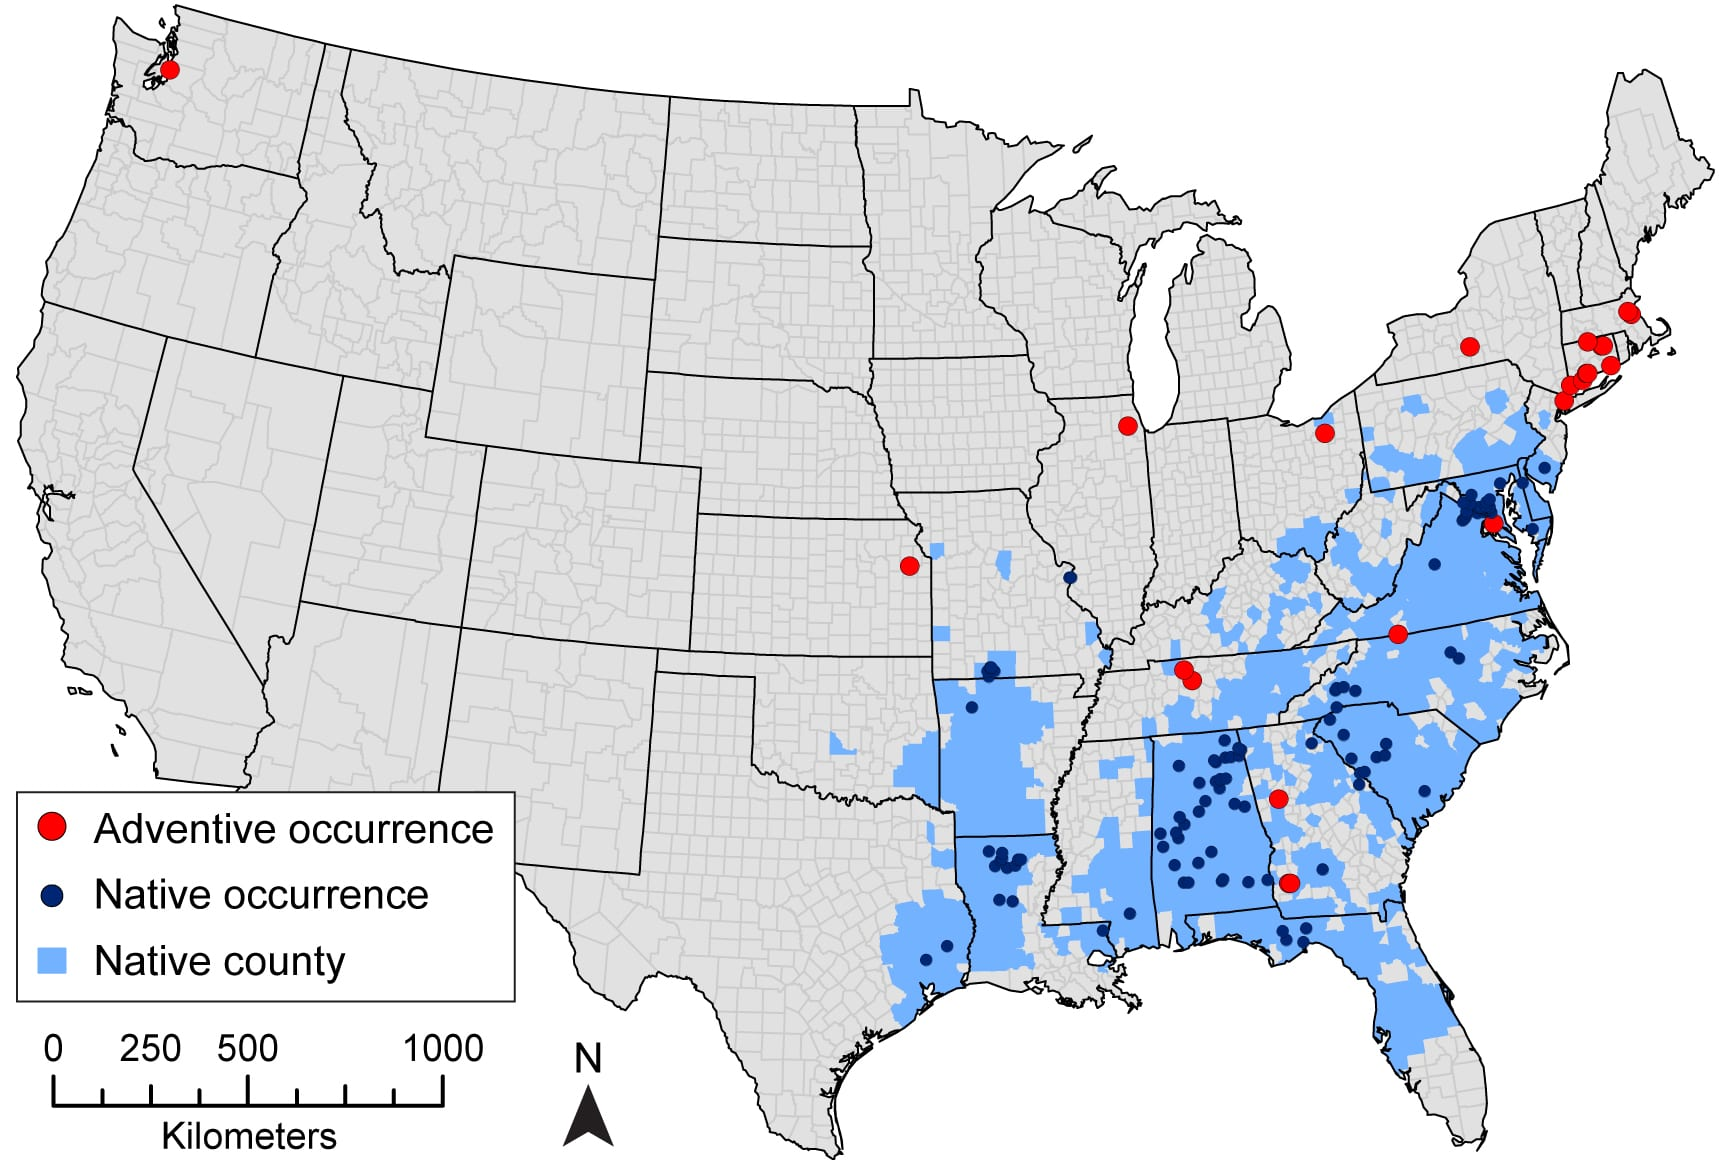 native and adventive range of chionanthus virginicus white fringetree in the continental us